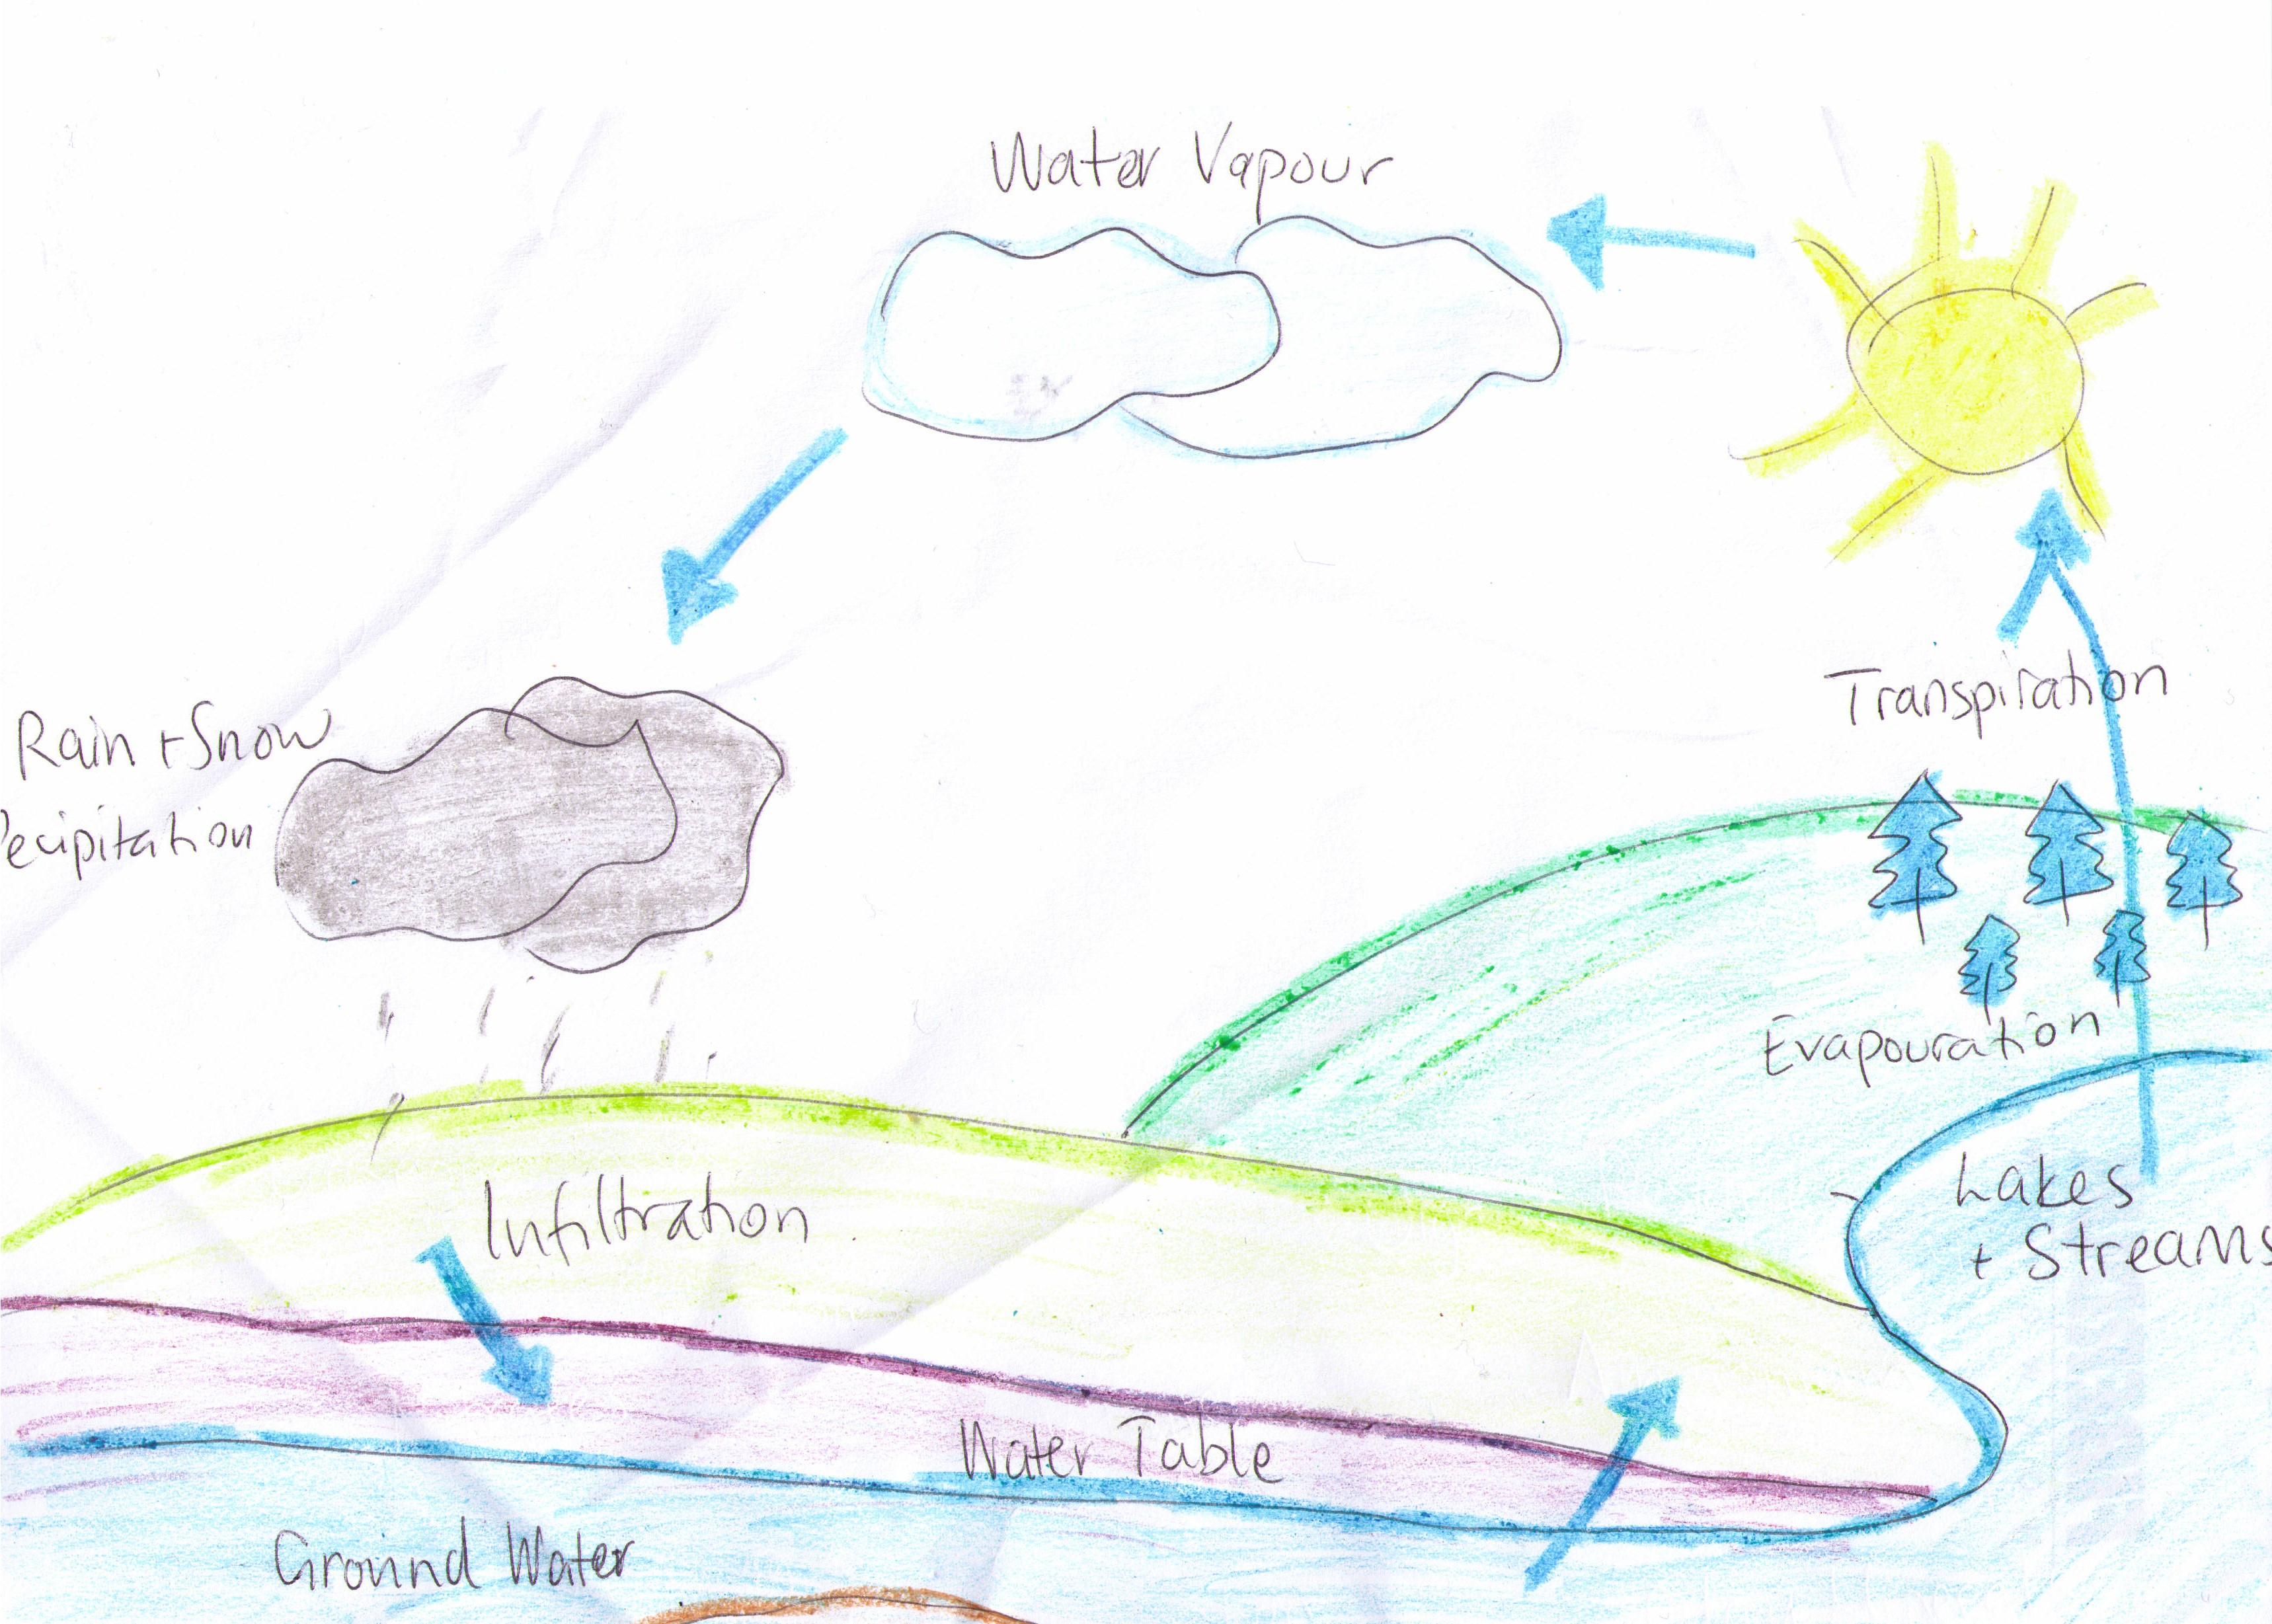 Hydrologic cycle pictures posters news and videos on your hydrologic cycle picture hydrological cycle jpg ccuart Image collections